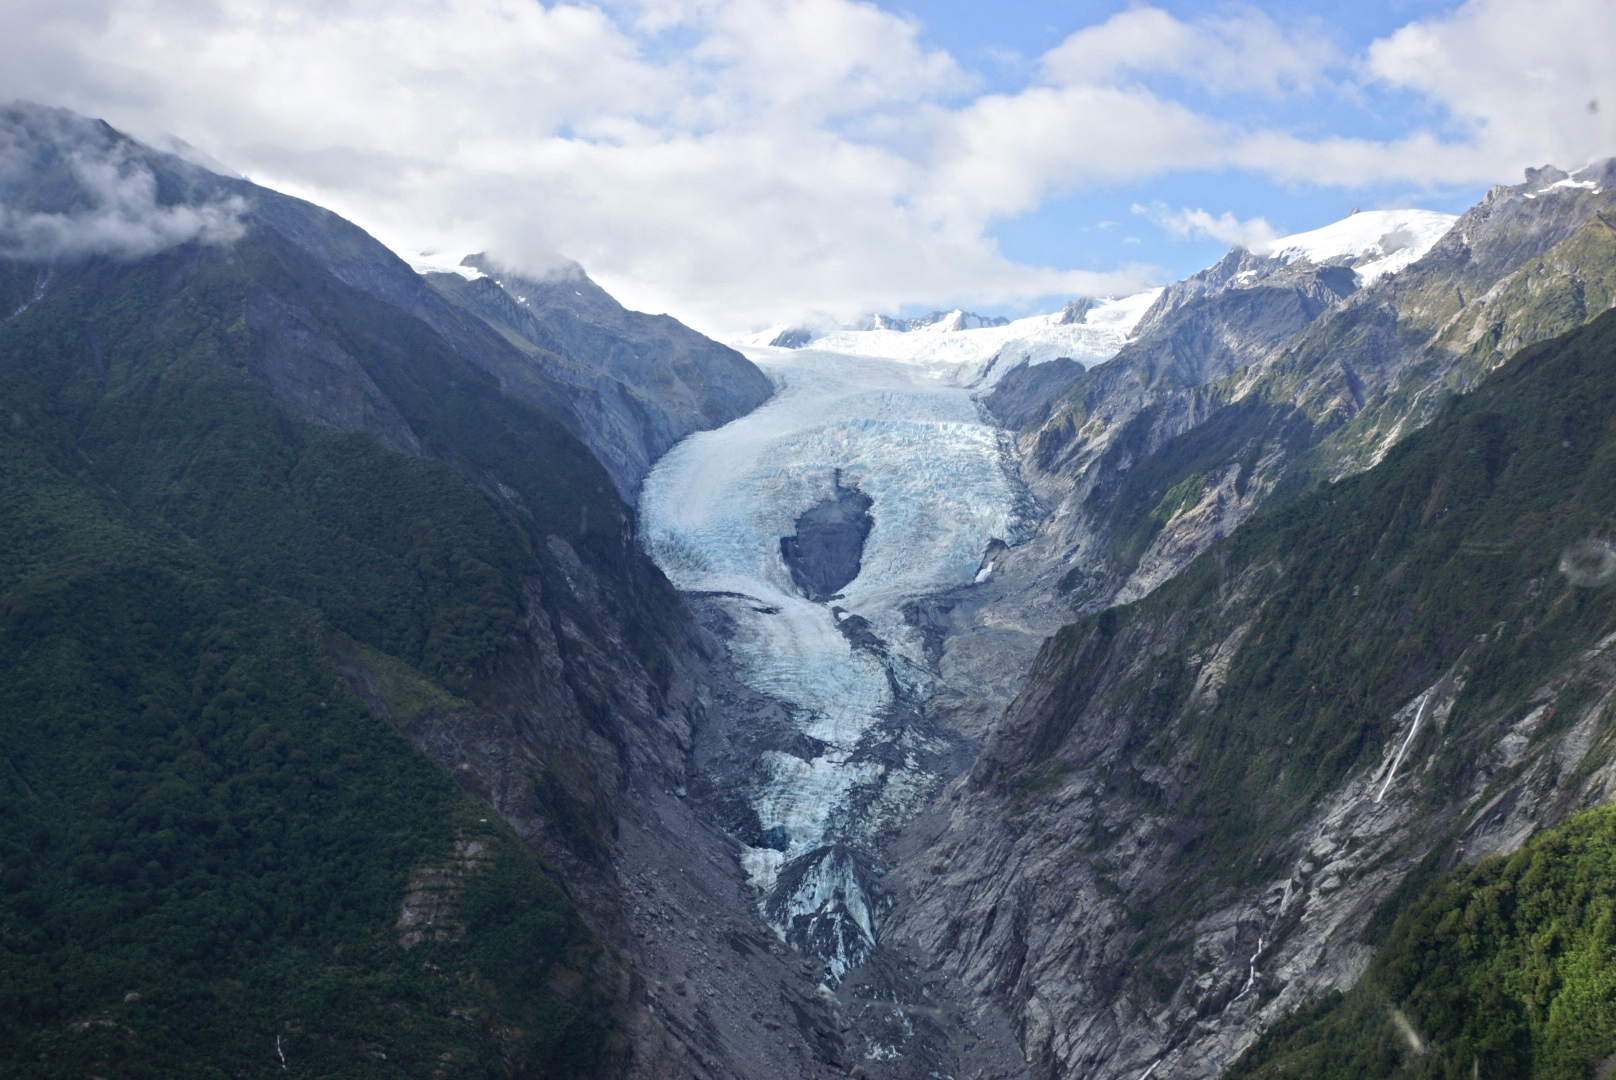 Franz Josef Glacier from Helicopter